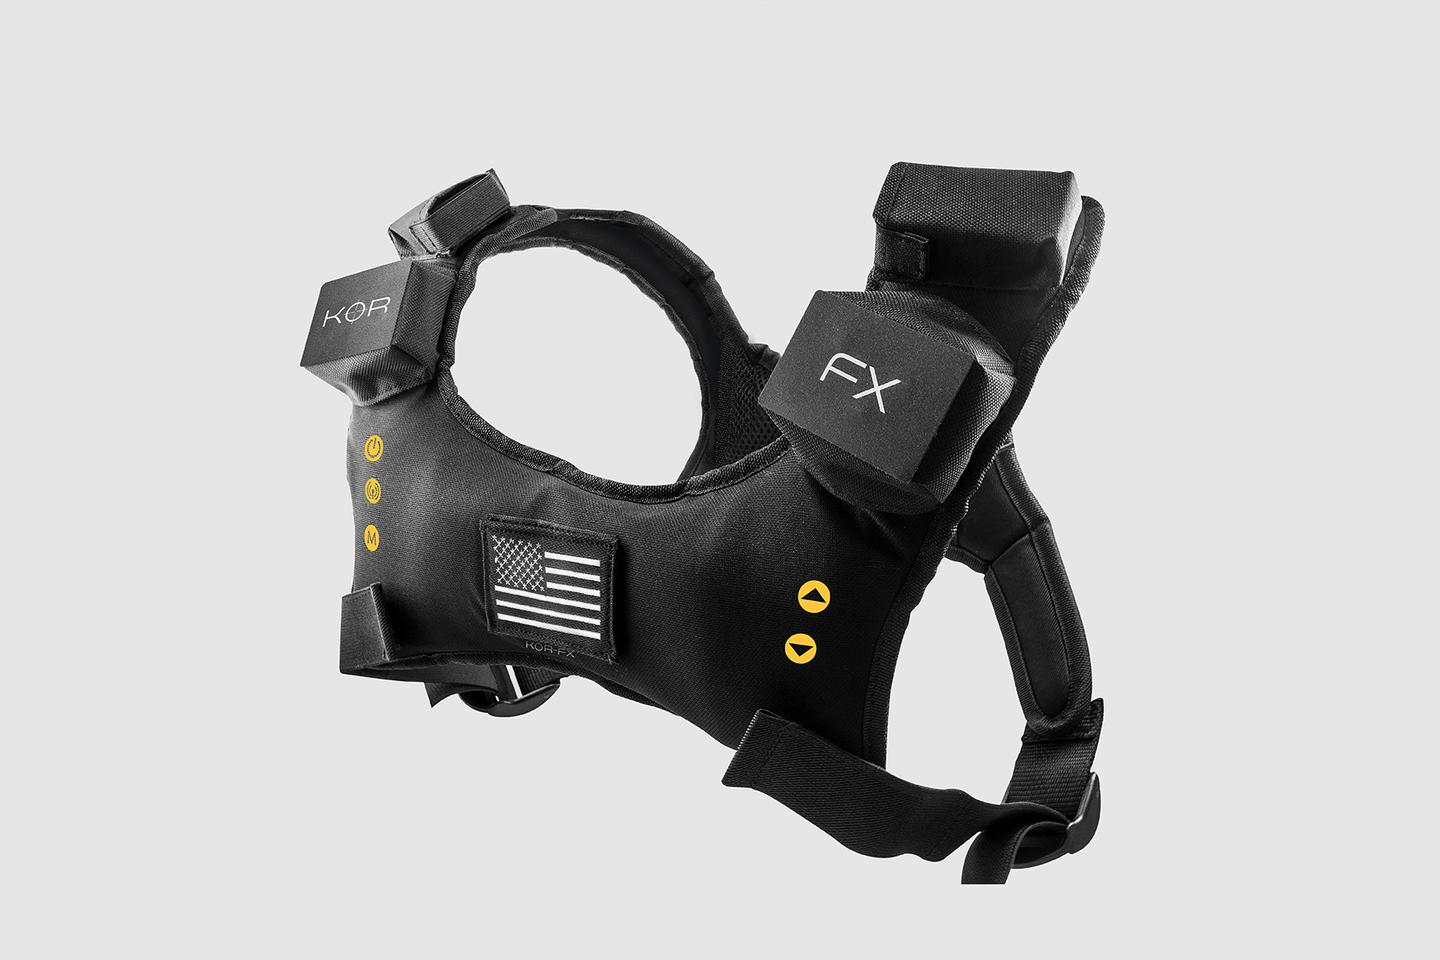 The KOR-FX 4DFX haptic gaming vest has been in development for five years.